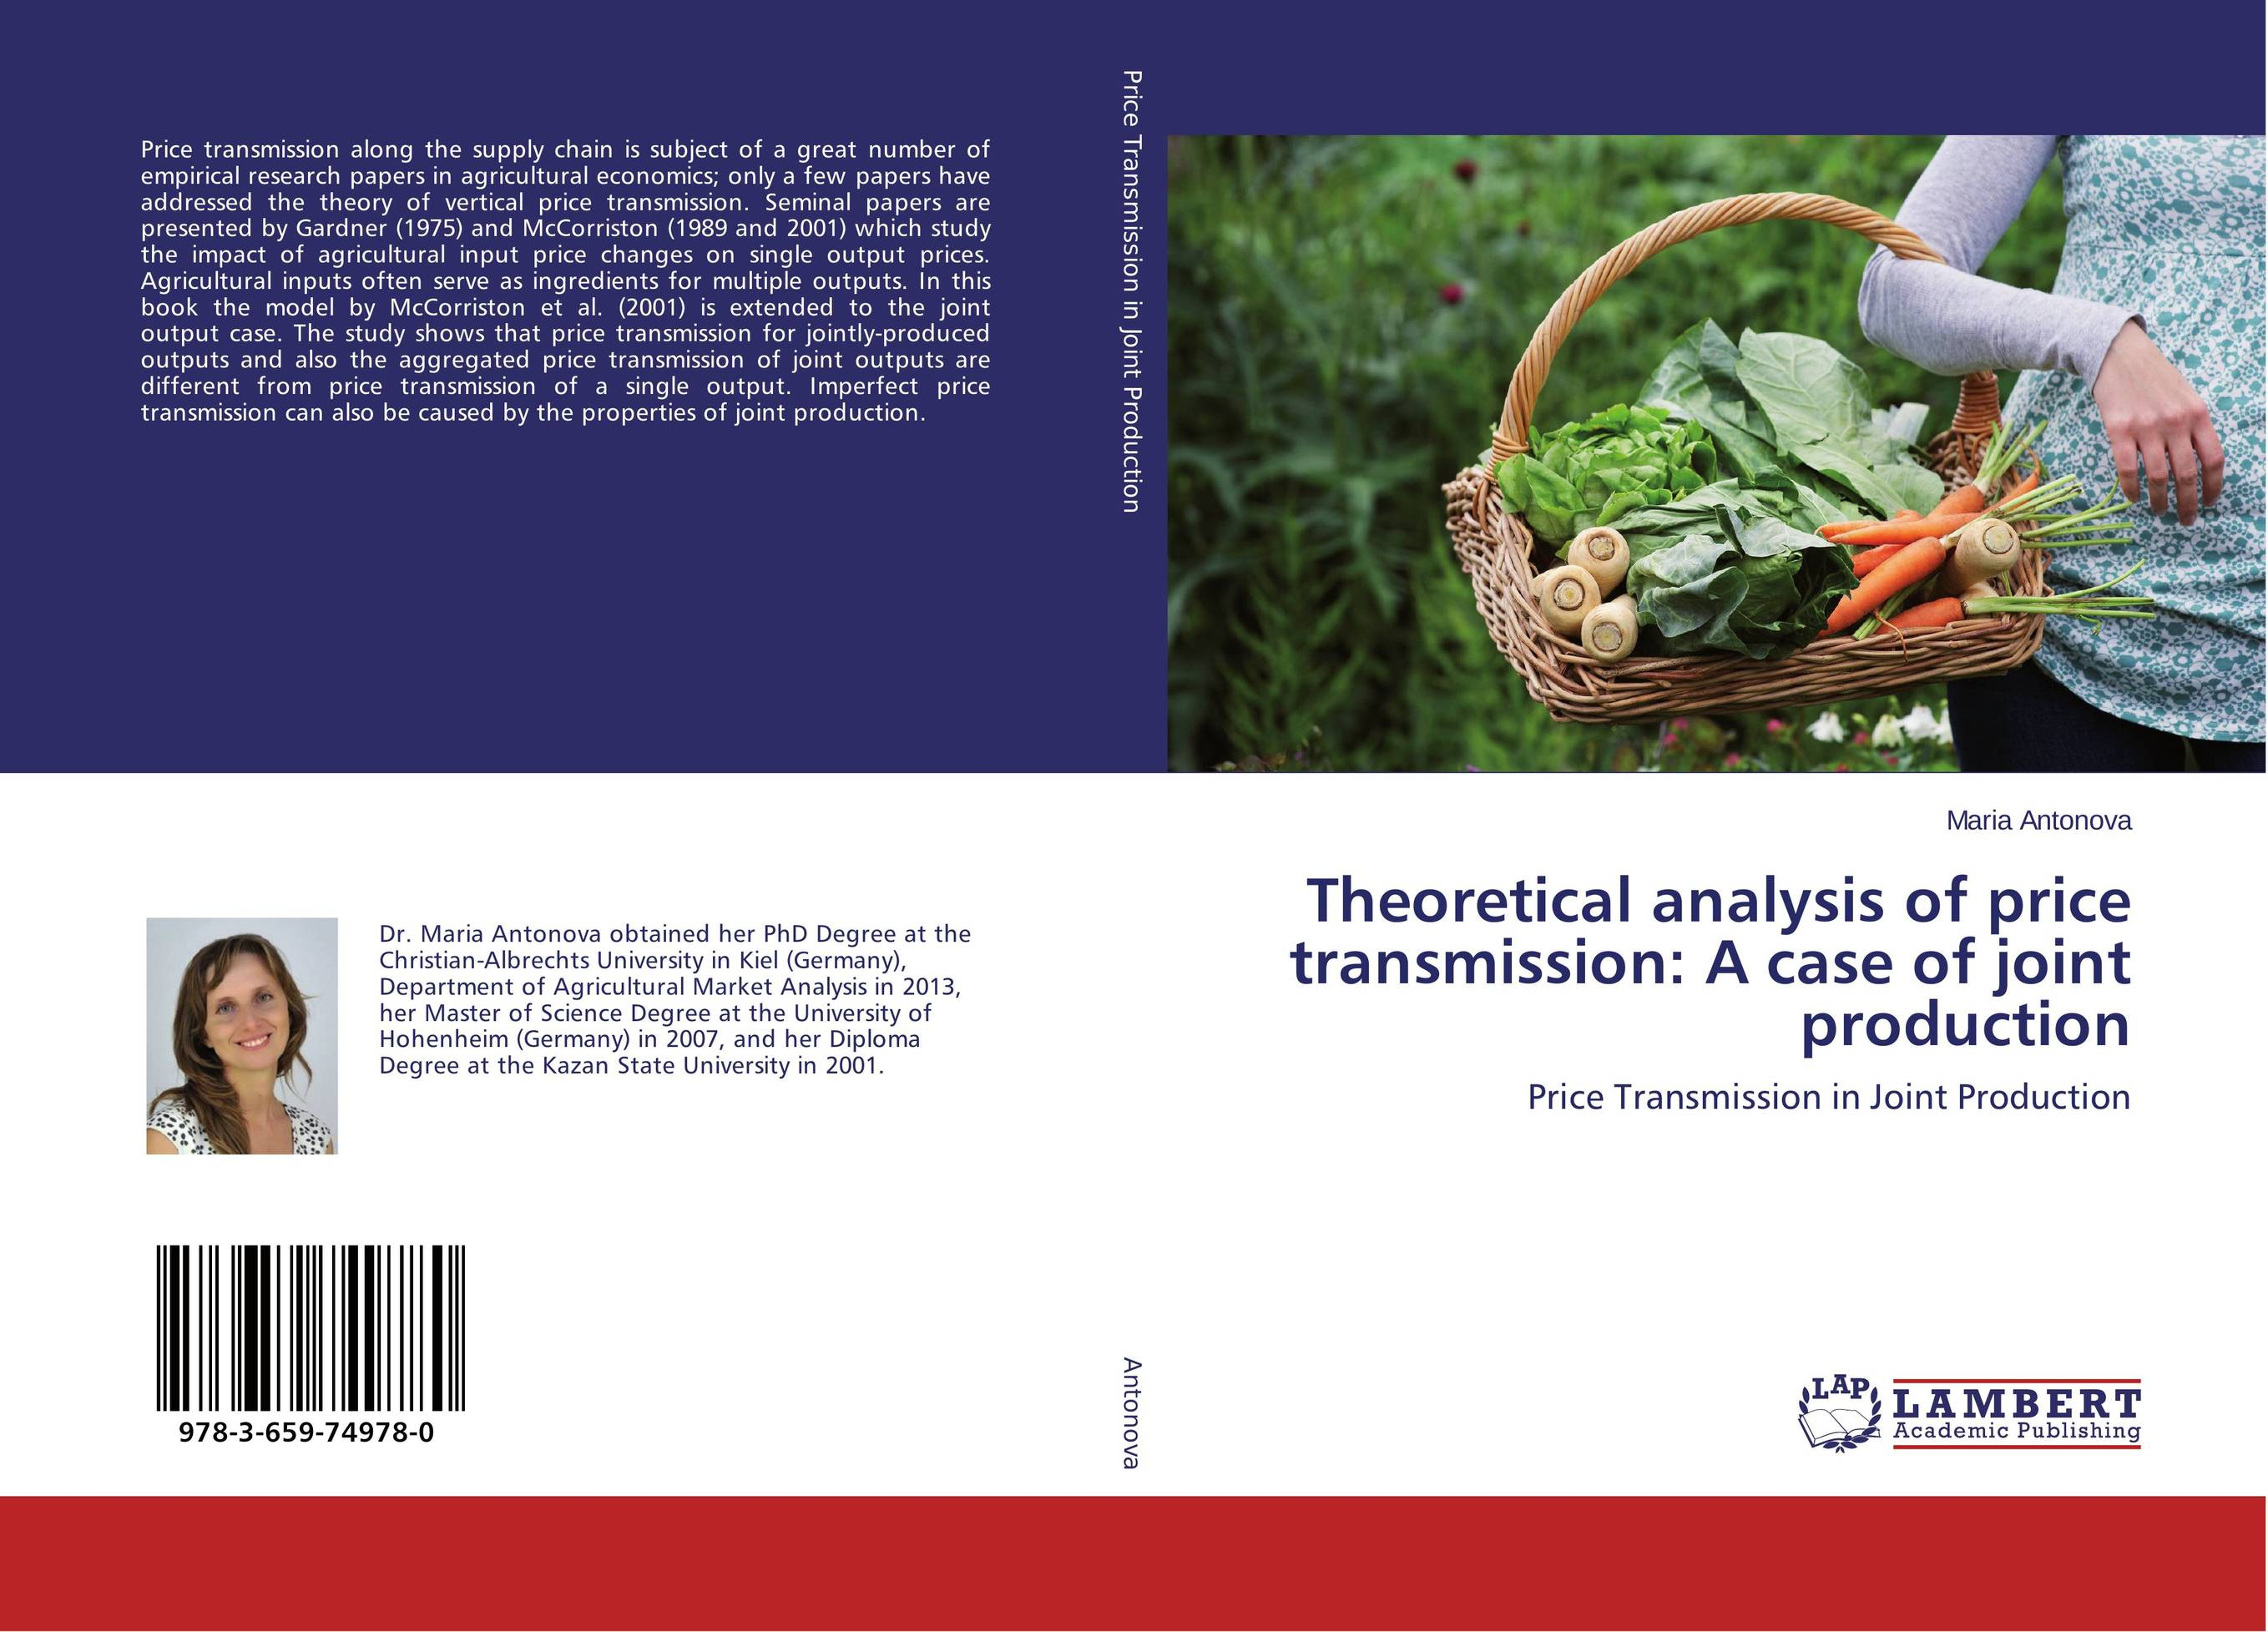 Theoretical analysis of price transmission: A case of joint production